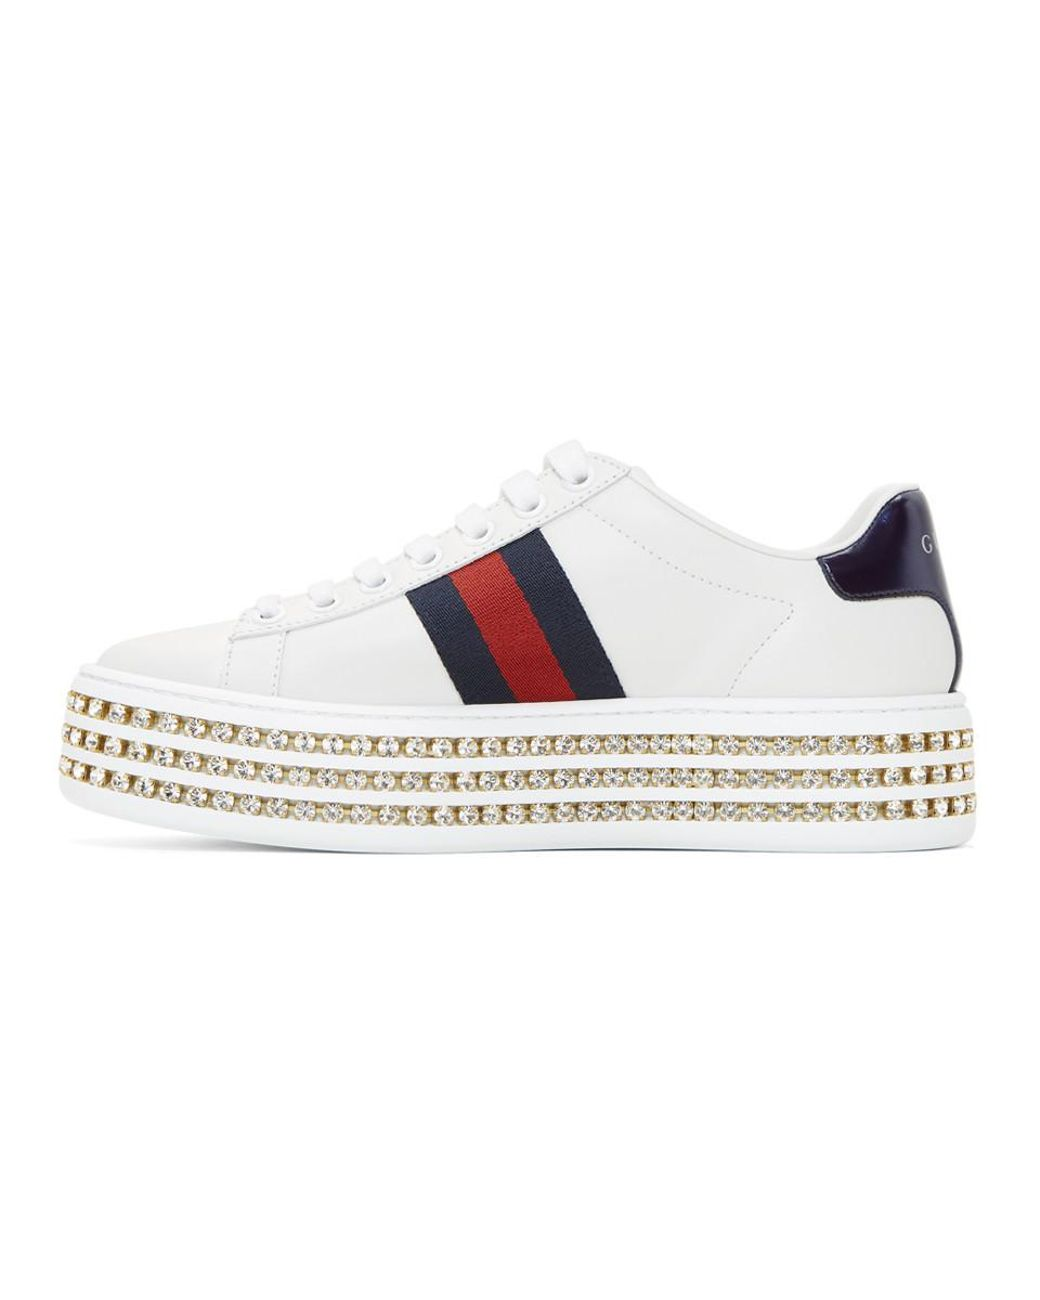 29c9cdbf608 Gucci White Crystal New Ace Sneakers in White - Save 22% - Lyst